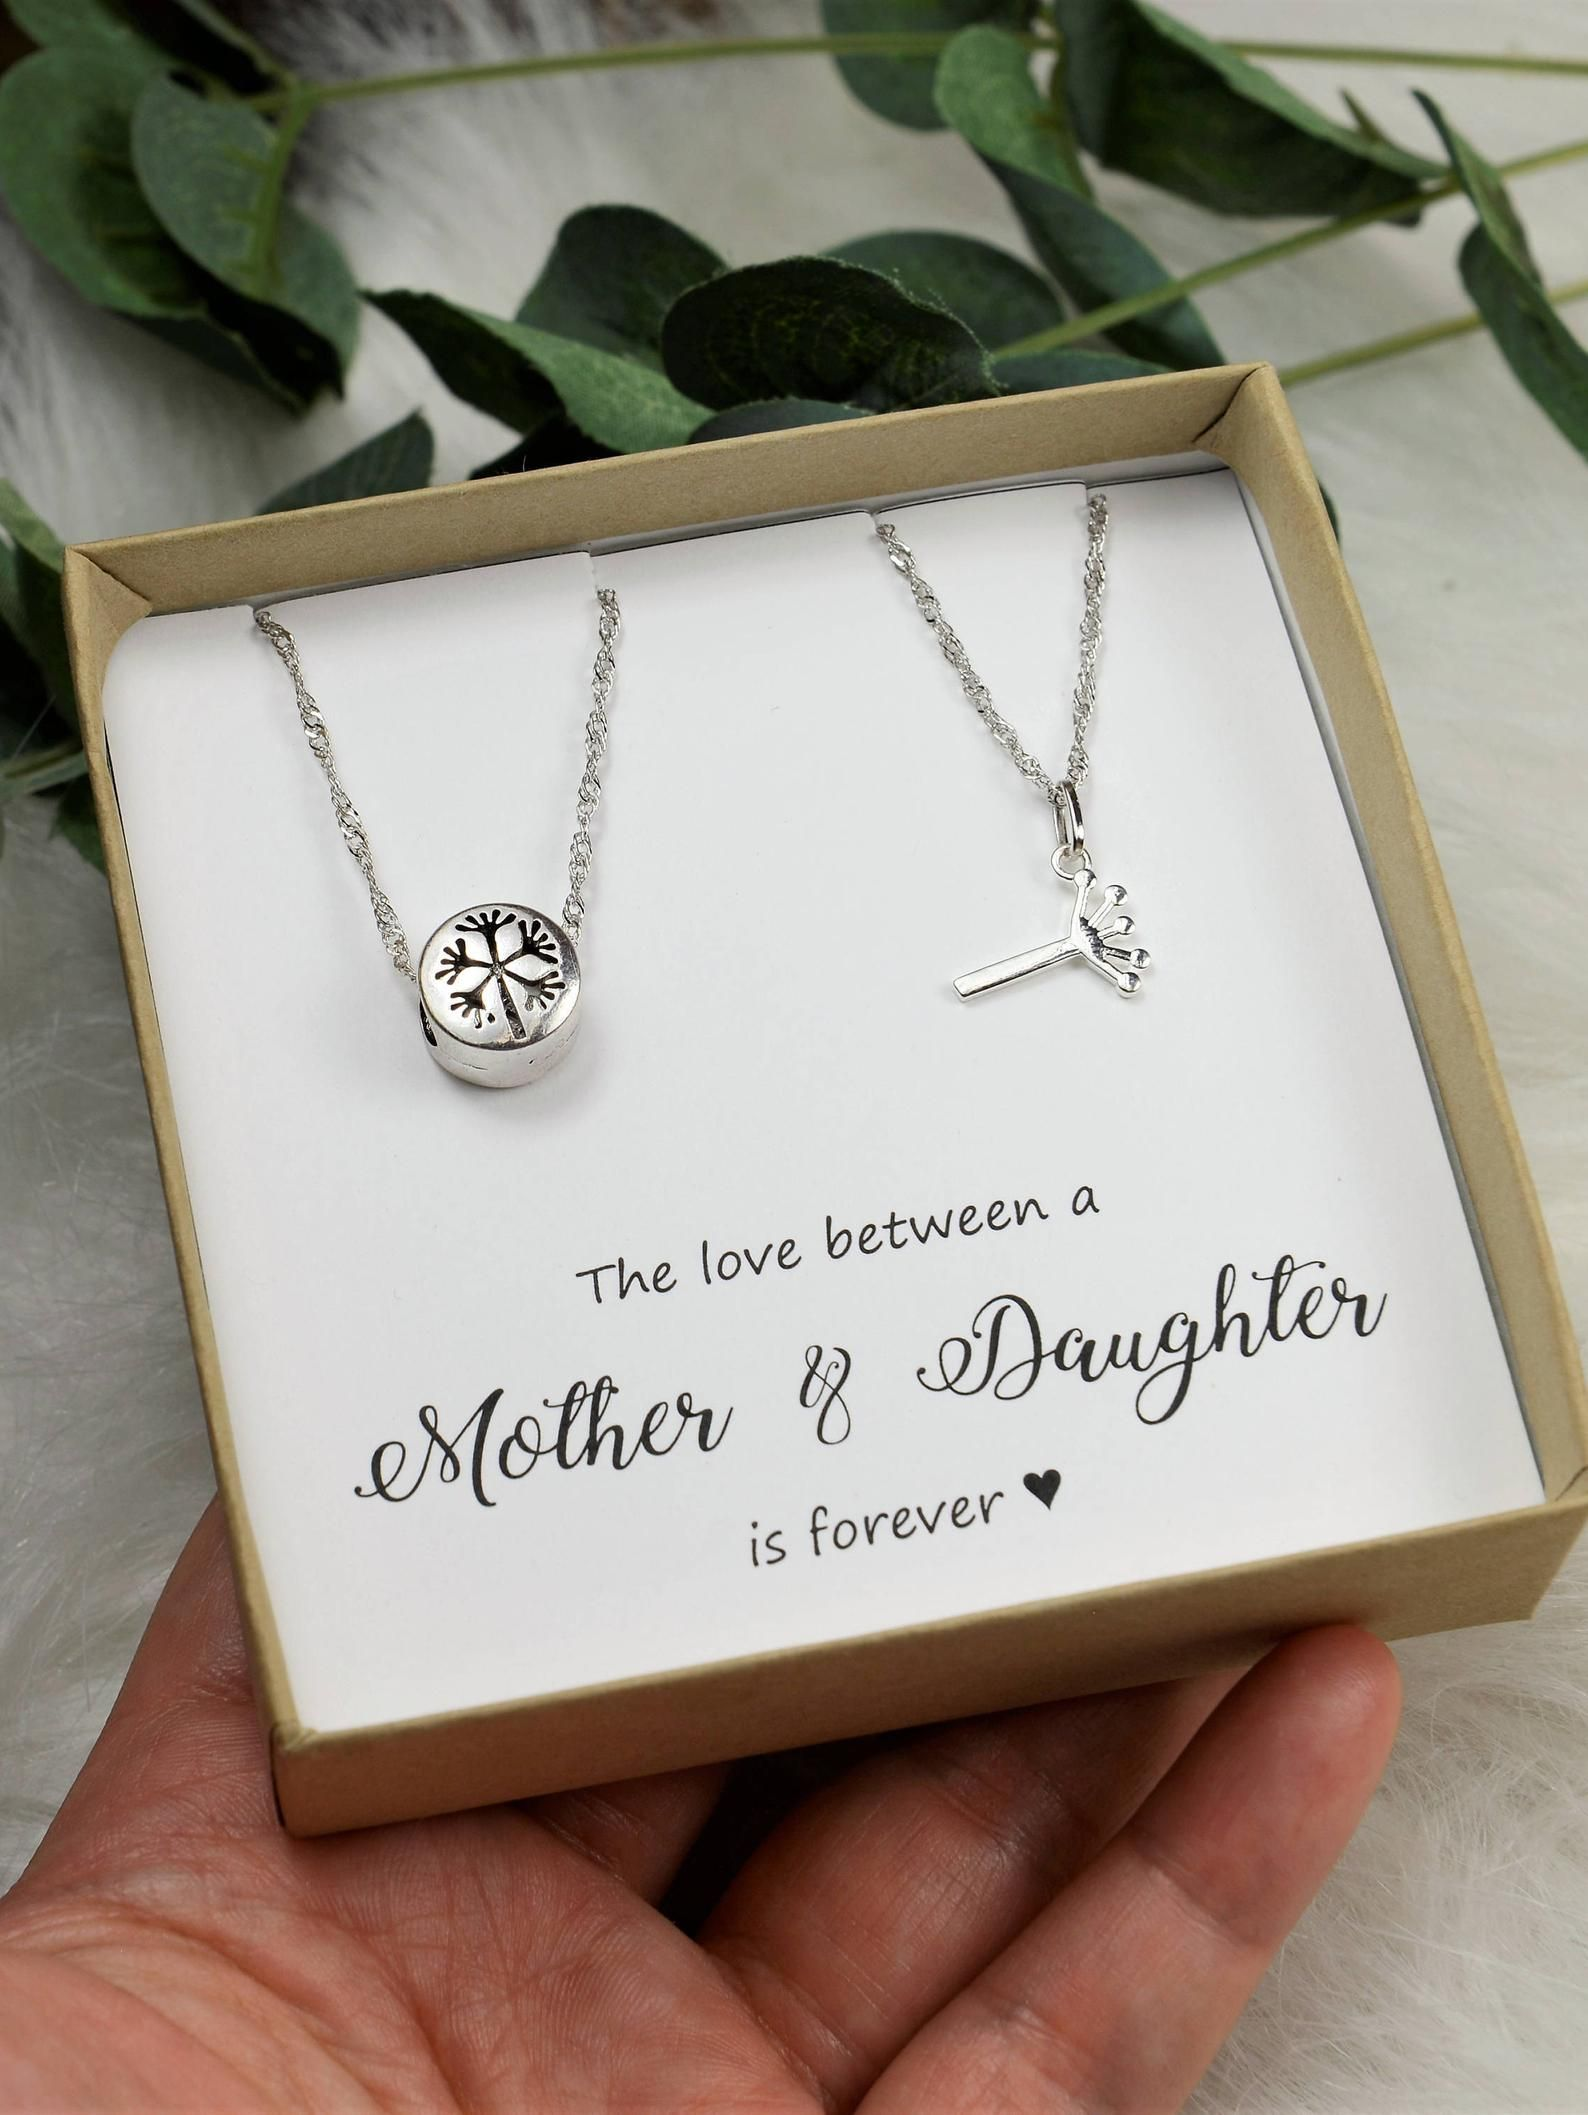 Gift For Her A Mother/'s Love My Mom/'s My Best Friend. My Mother My Friend Mother/'s Necklace Mother/'s Day Jewelry Gift For Mom